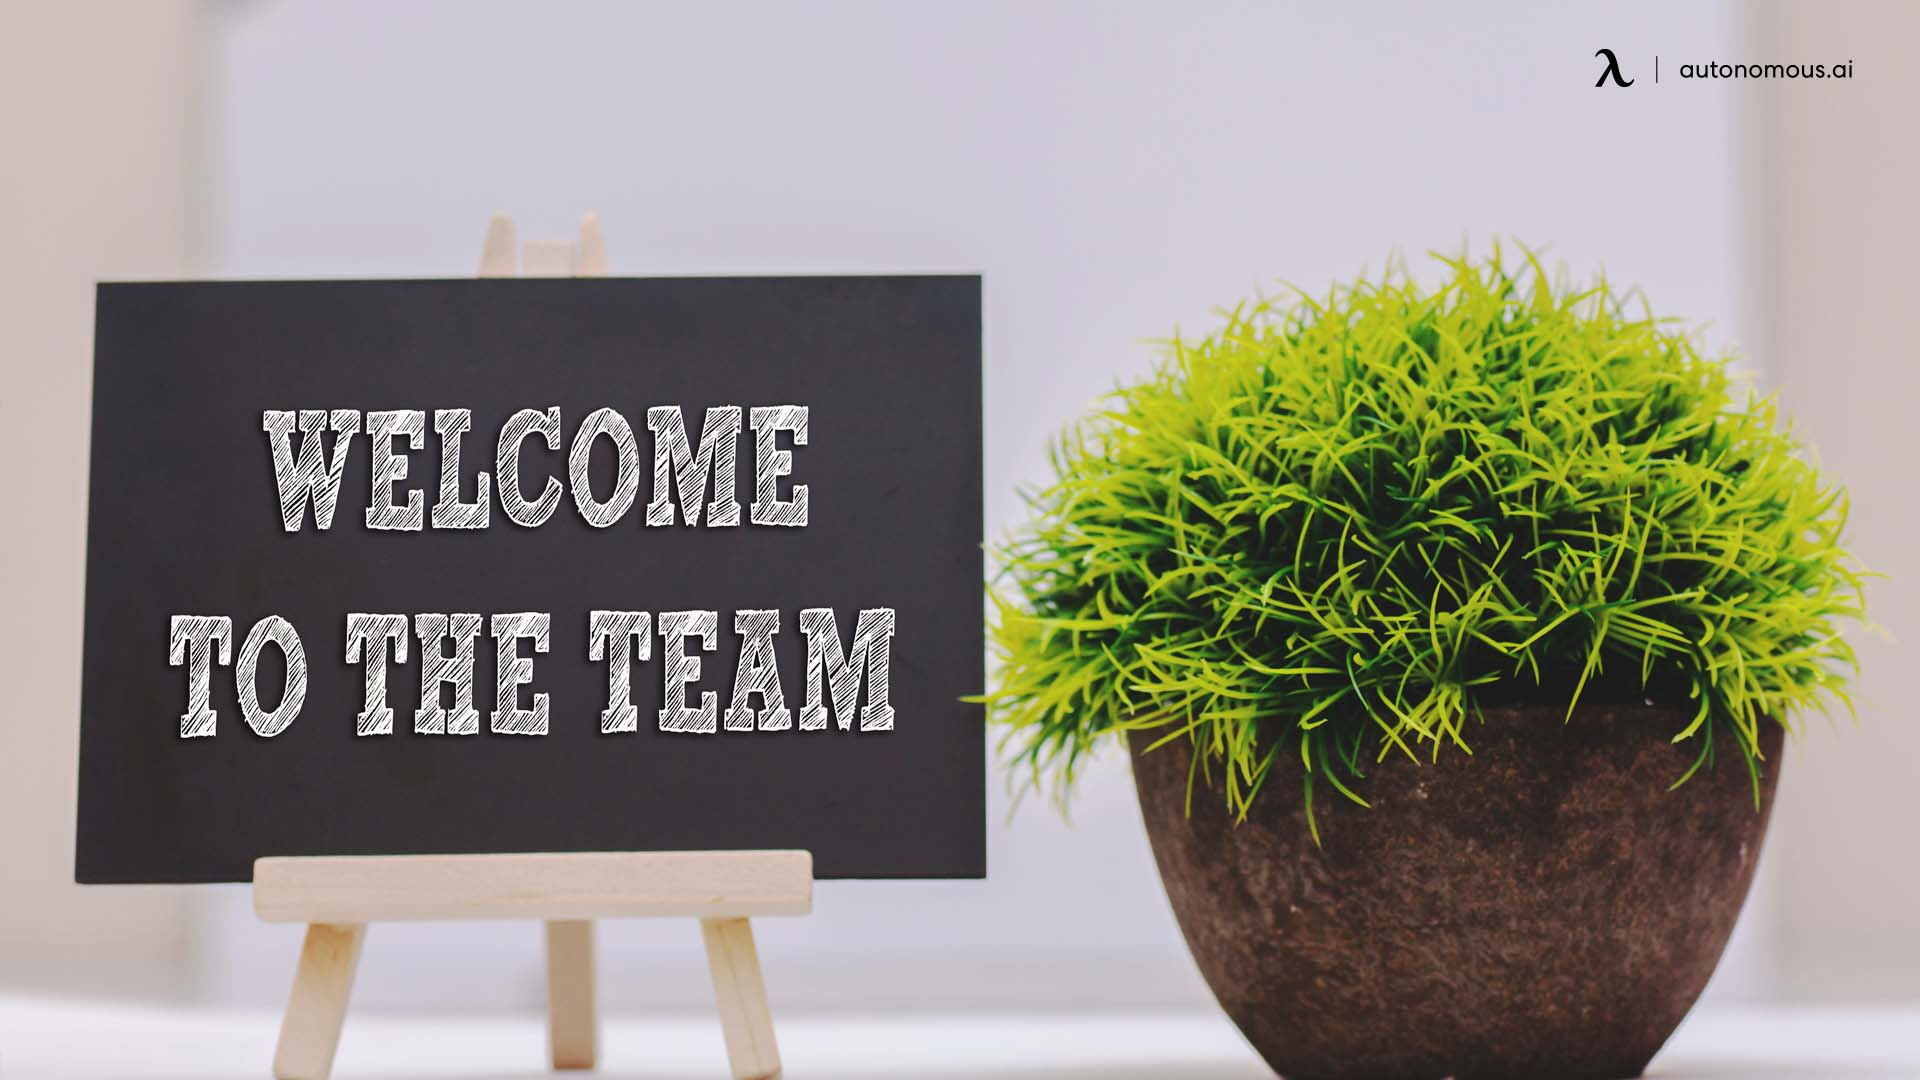 Send a first-day welcome announcement to the company